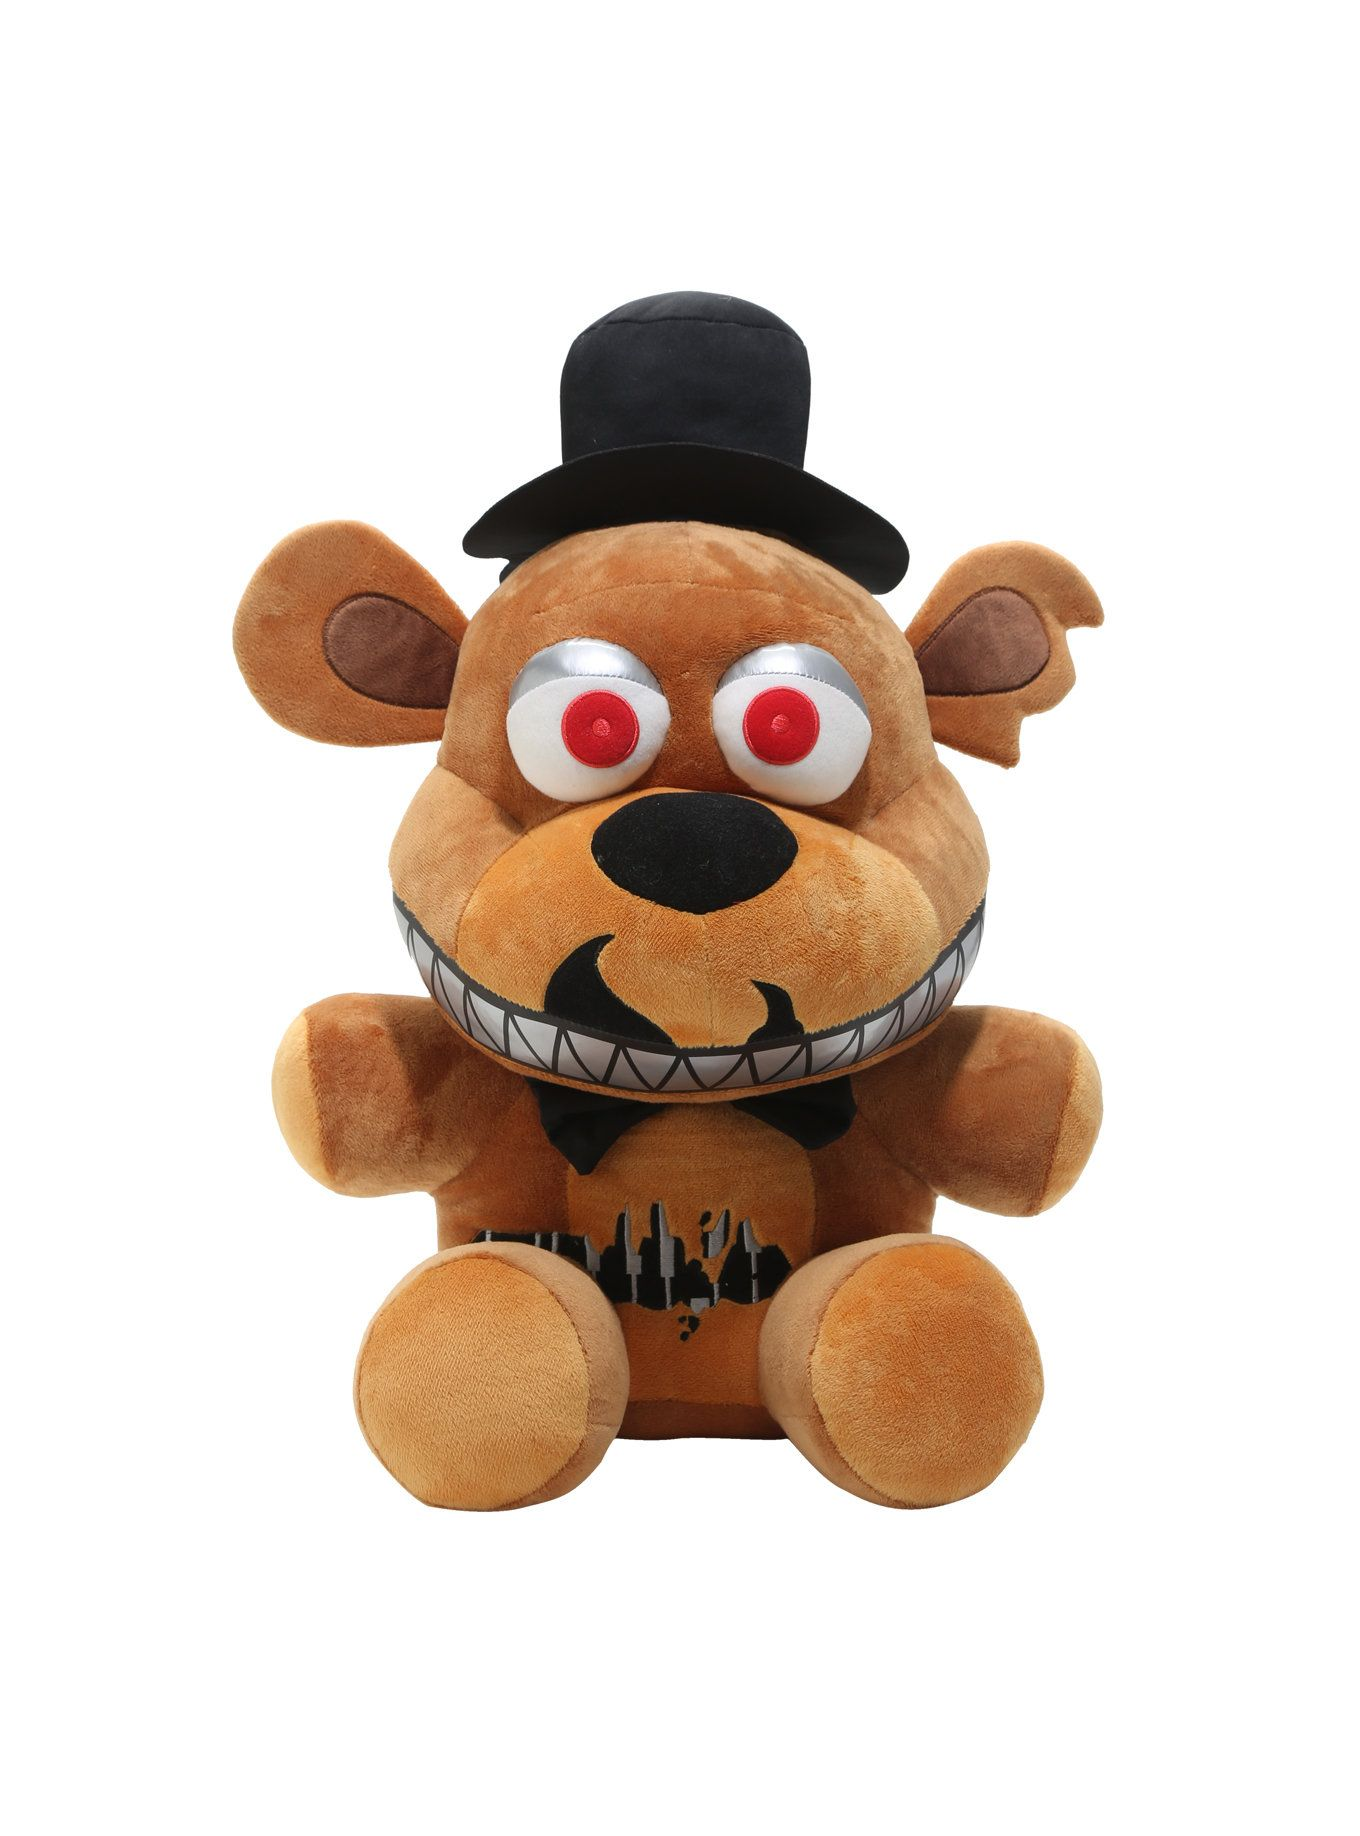 How to make your own five nights at freddys foxy plush - Funko Five Nights At Freddy S Nightmare Freddy Jumbo Plush Hot Topic Exclusive Hot Topic